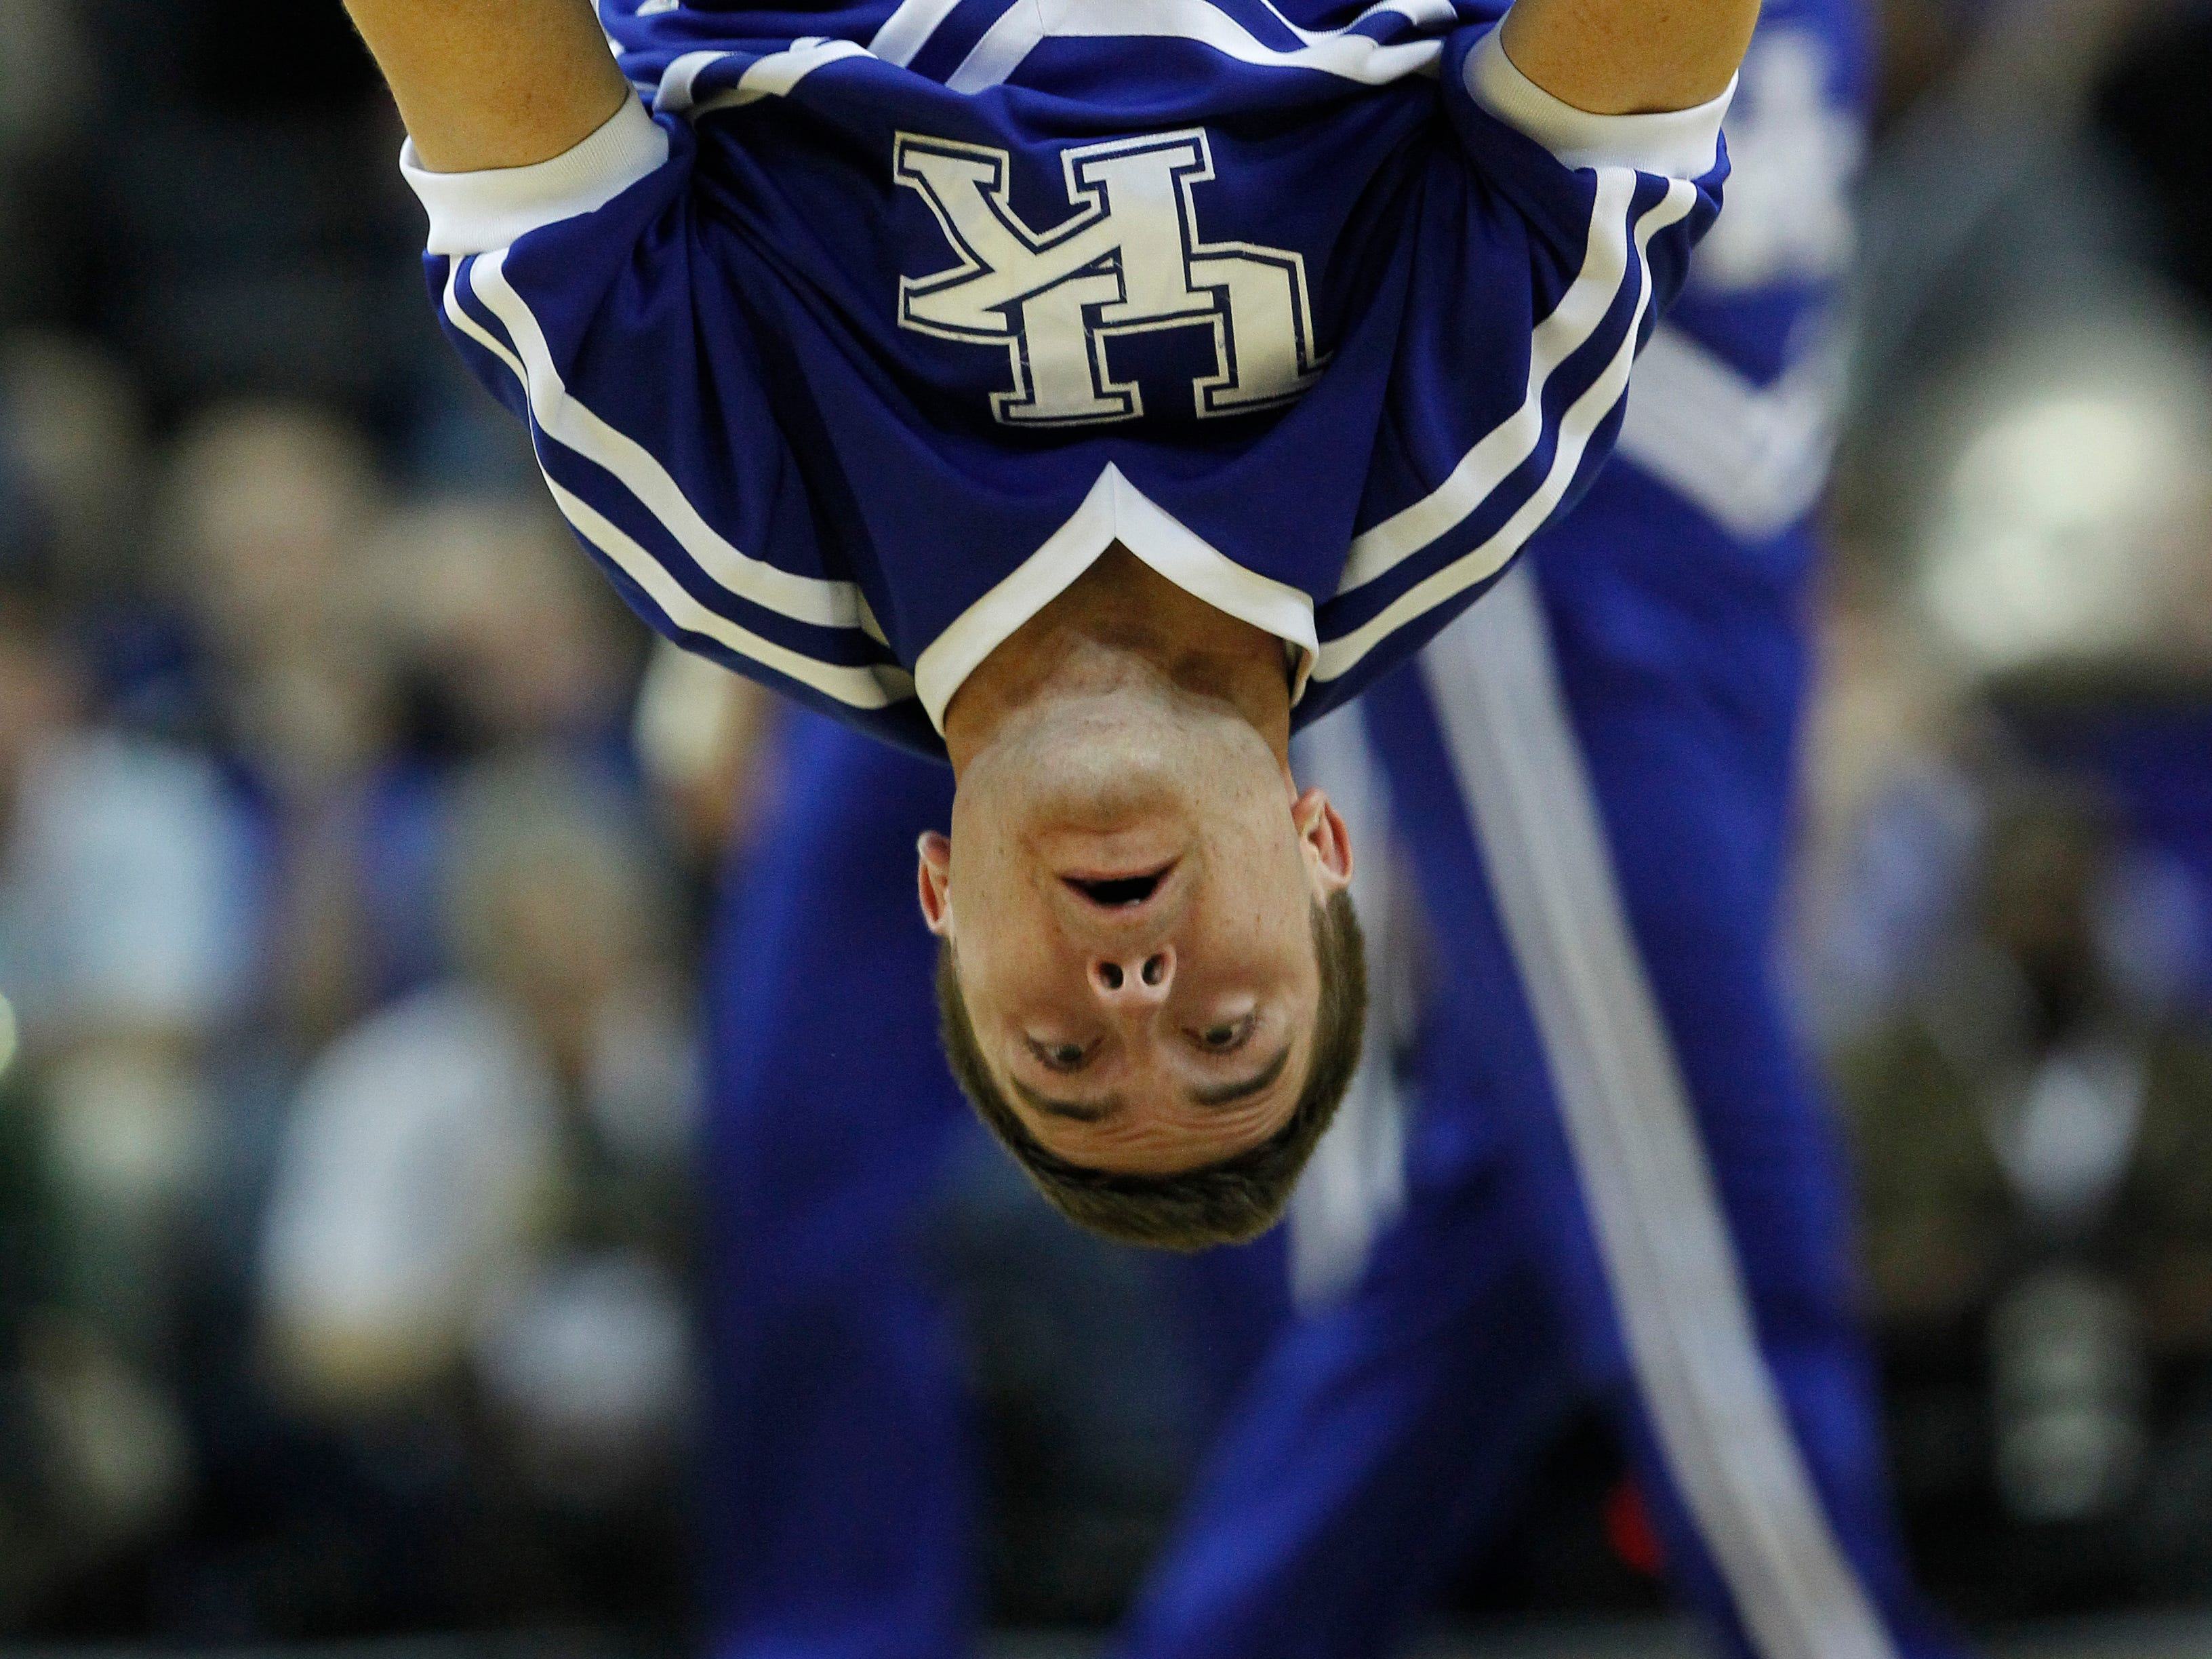 A Kentucky cheerleader performs during the first half of an NCAA college basketball game in the championship game of the 2012 Southeastern Conference tournament at the New Orleans Arena in New Orleans, Sunday, March 11, 2012. (AP Photo/Gerald Herbert)